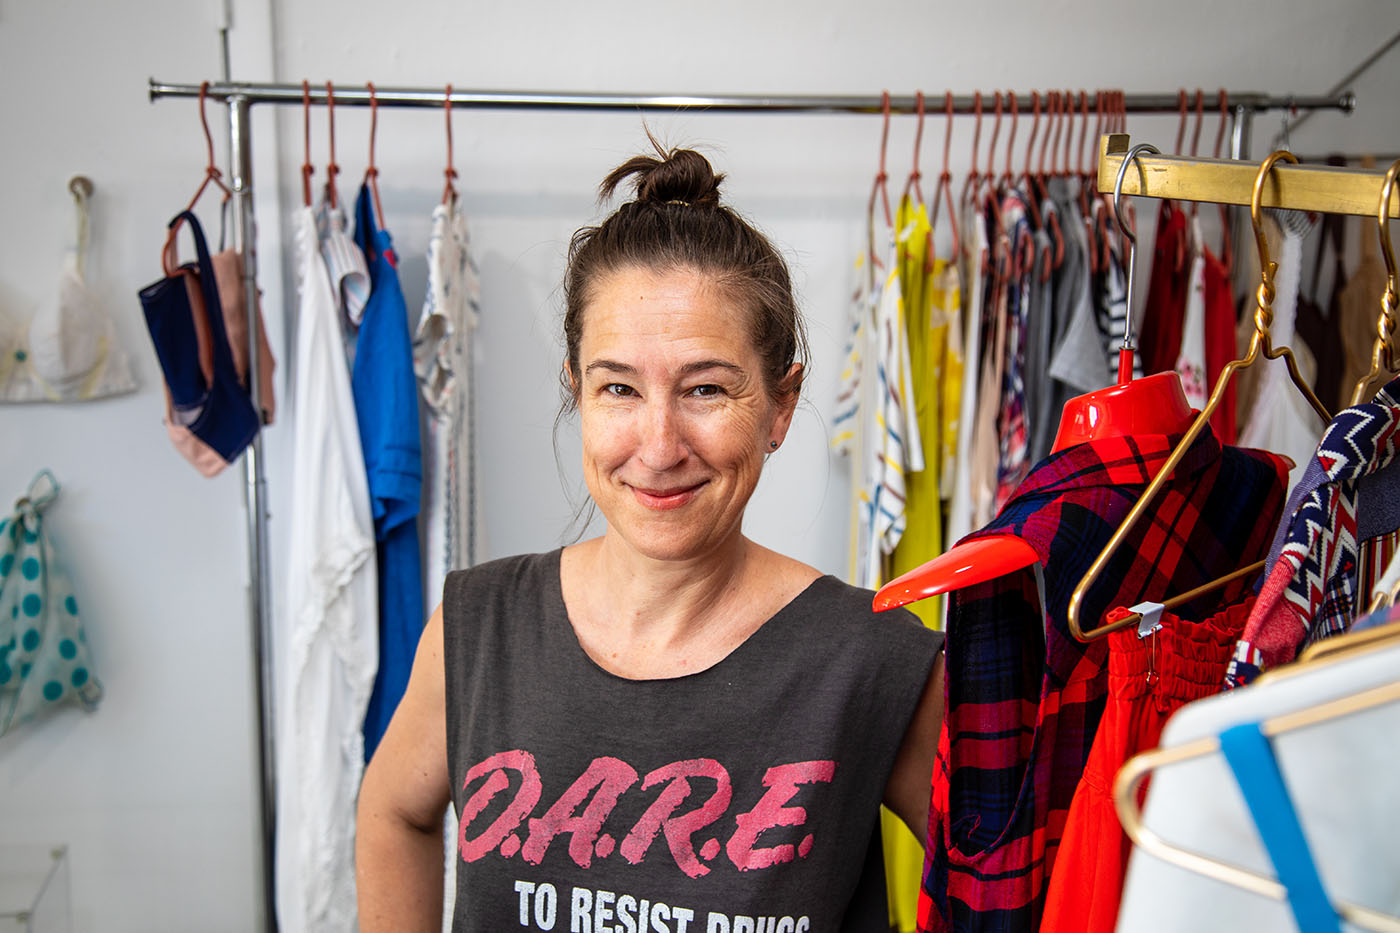 """I've gotten more and more involved in my clientele's closets over time, from closet clean-outs to outfit planning and styling to personalized shopping trips to fill in the gaps,"" Baber says."